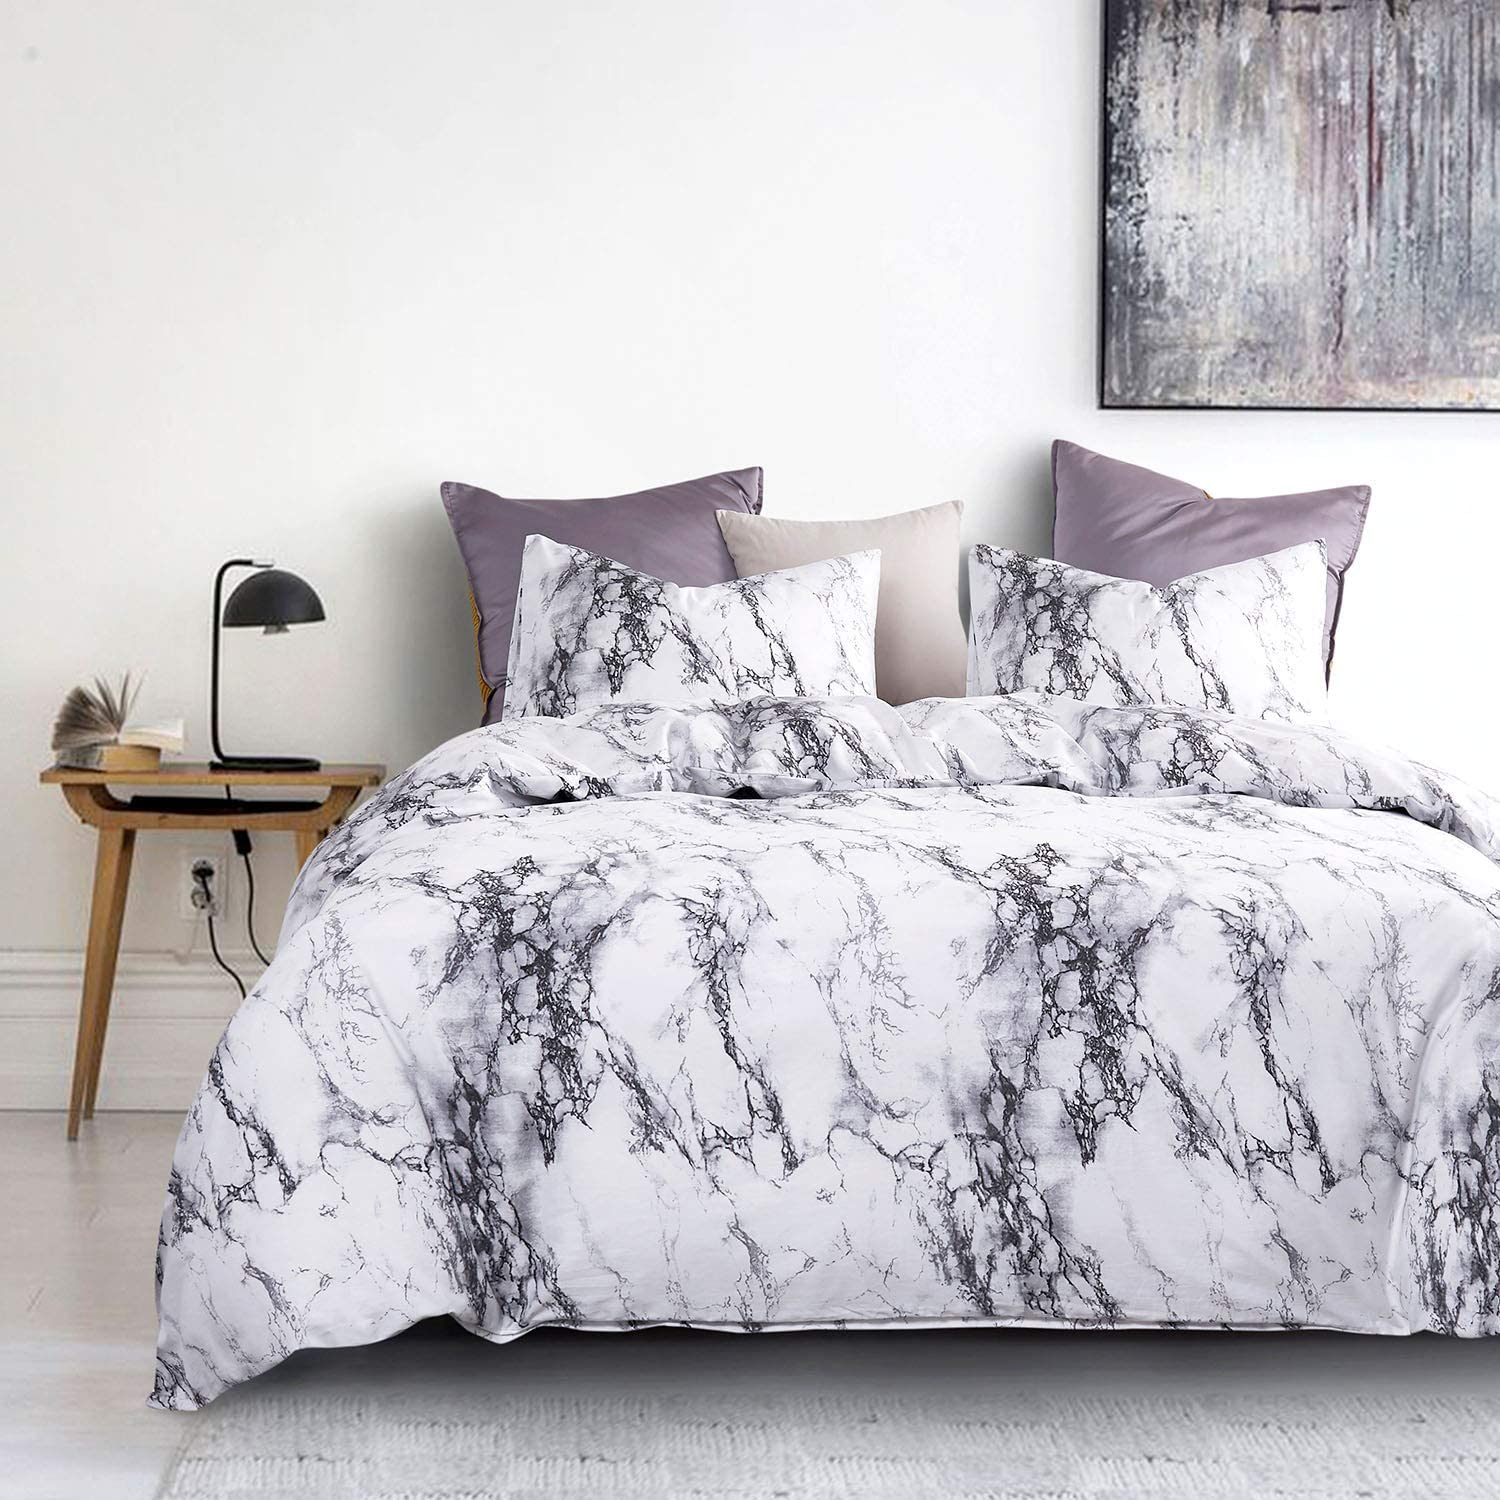 Marble Duvet Cover Set J A0022-BT3-Q 3pcs, Queen Size Black White and Gray Grey Modern Pattern Printed Soft Microfiber Bedding with Zipper Closure Wake In Cloud